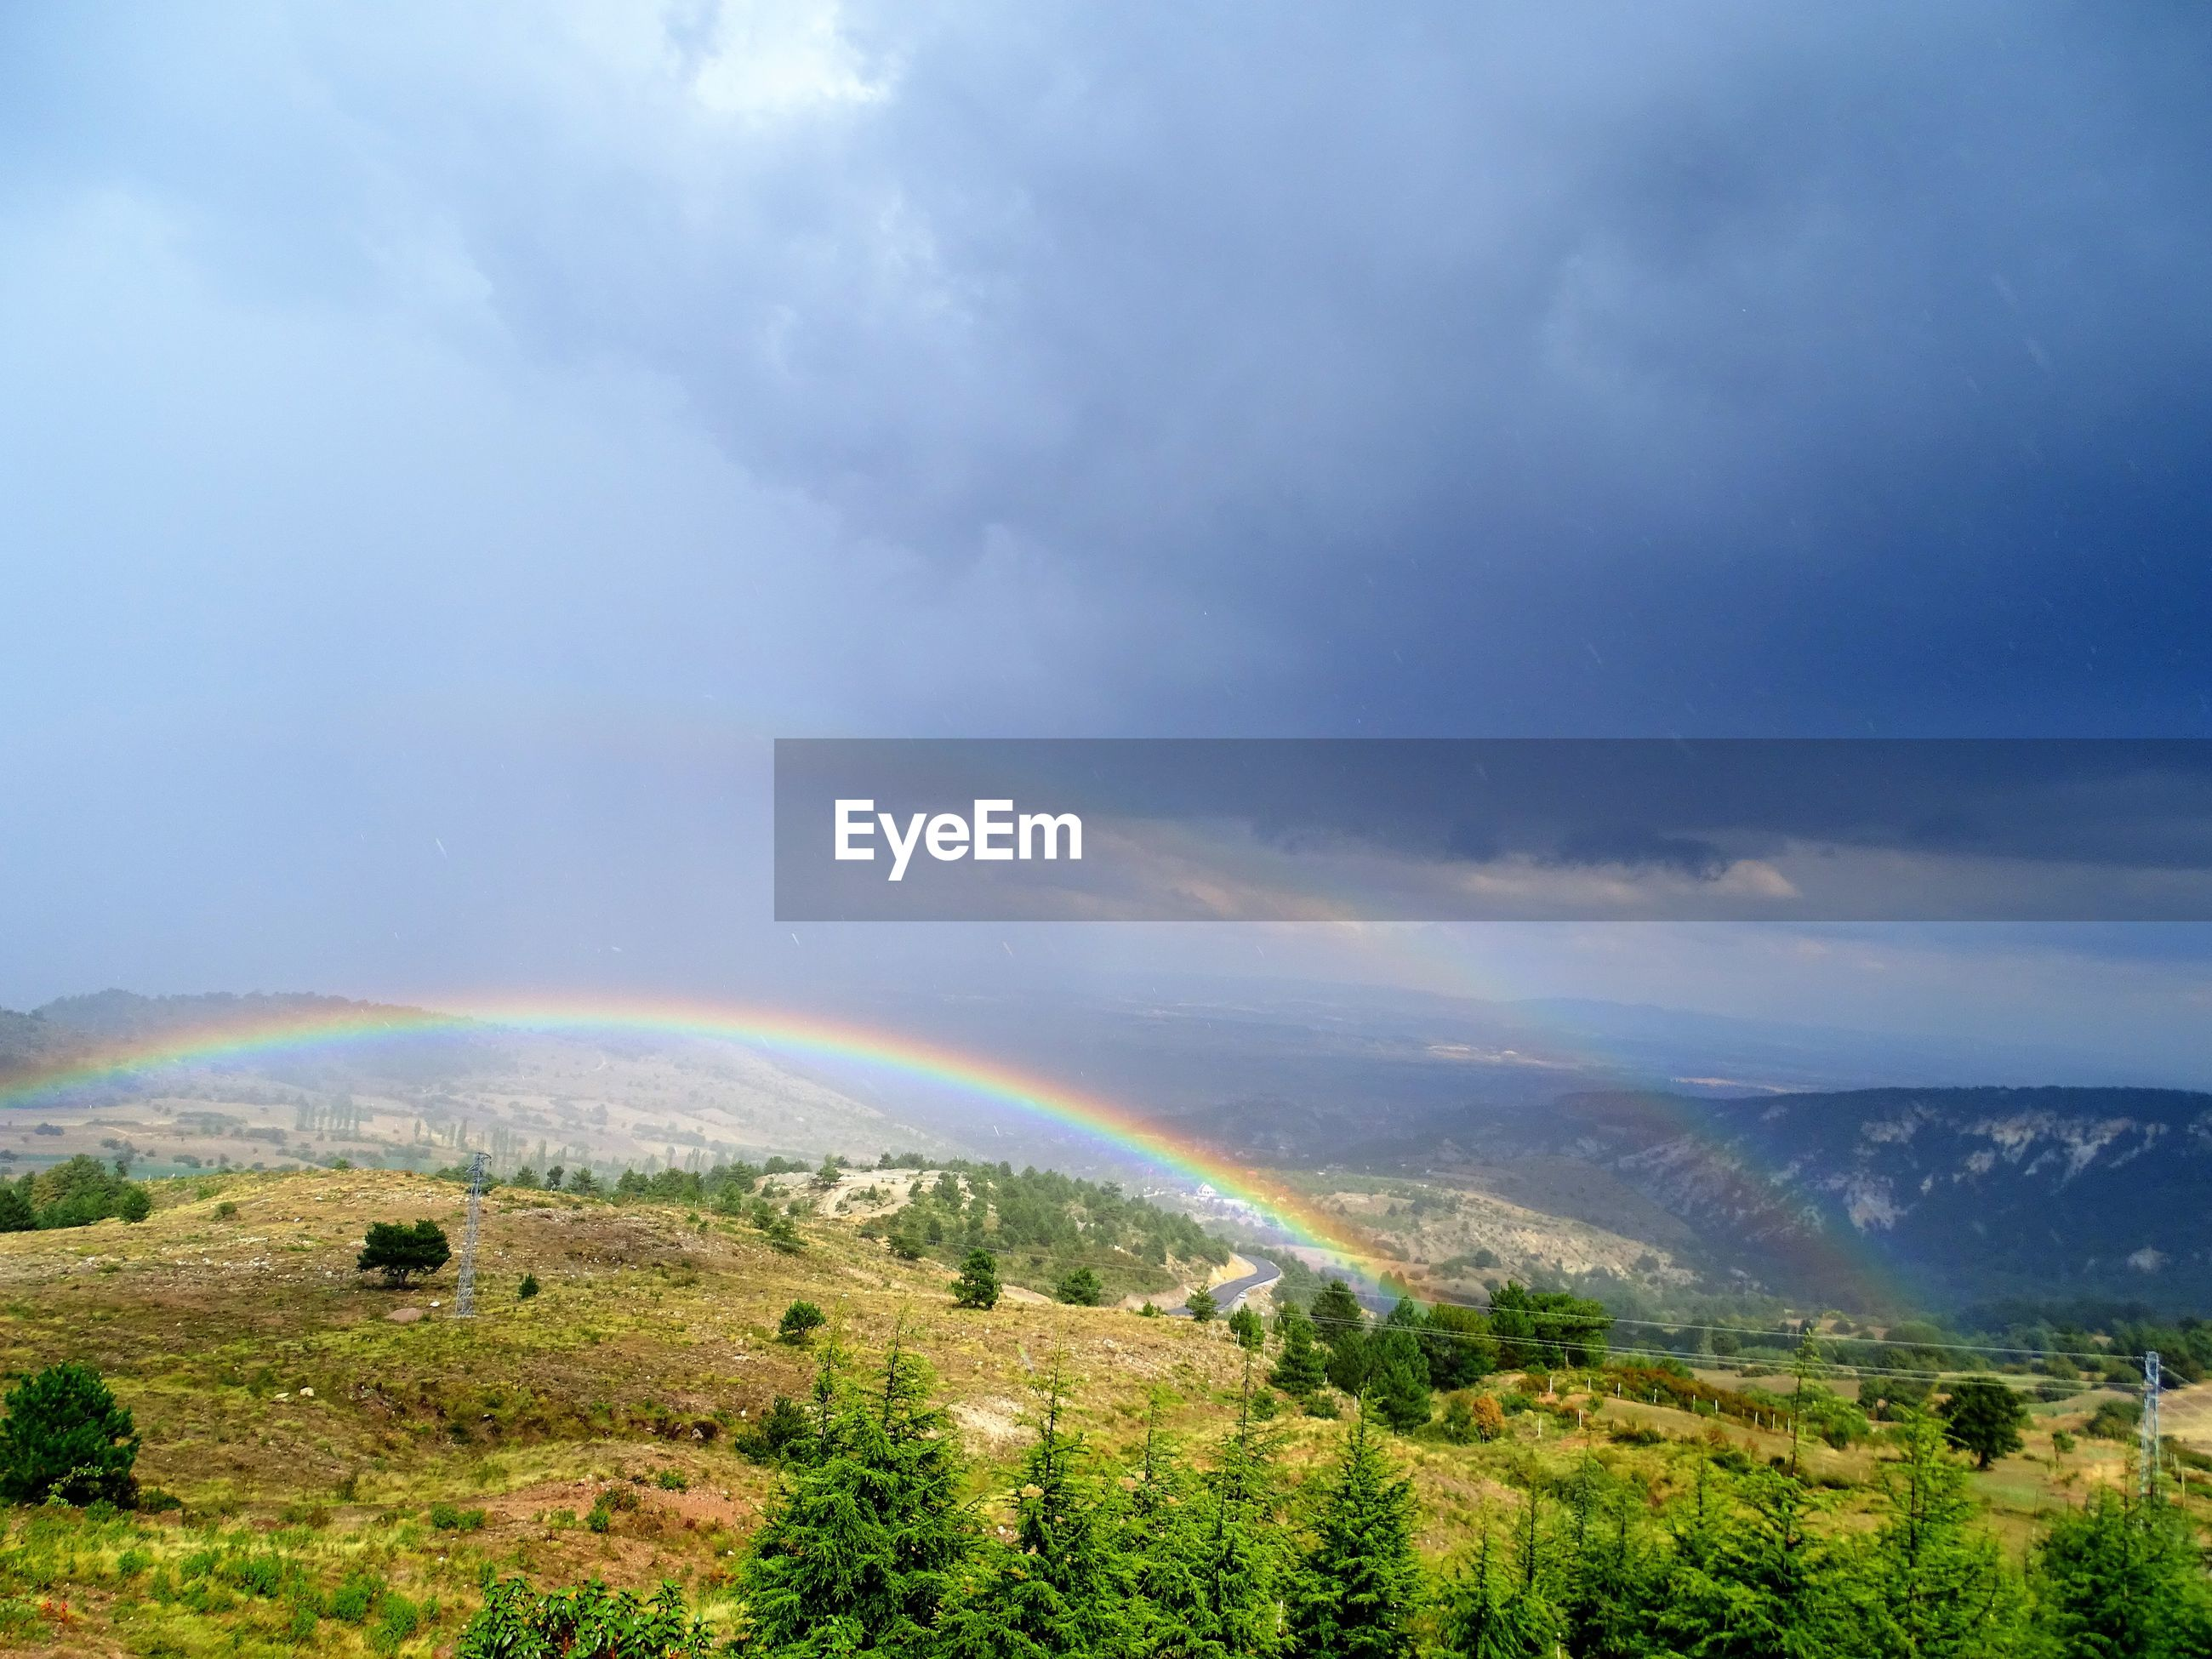 Scenic view of double rainbow on landscape against cloudy sky